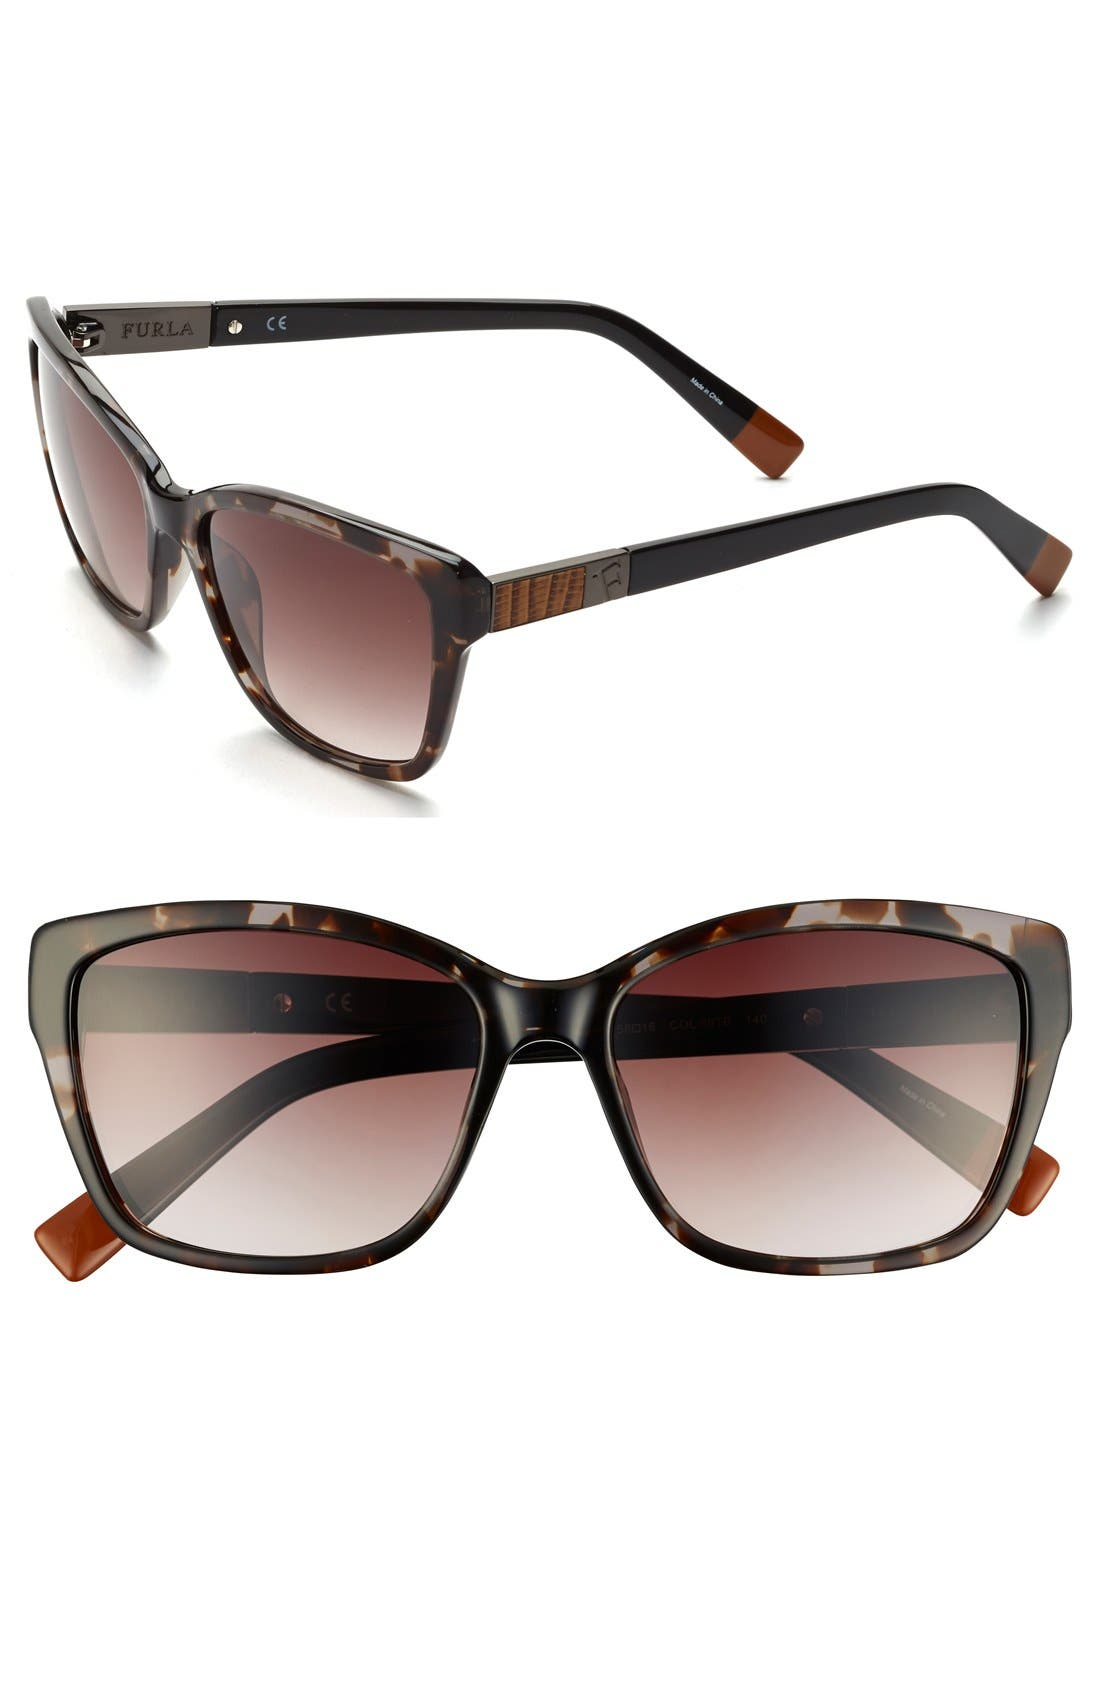 Main Image - Furla 56mm Leather Insert Sunglasses